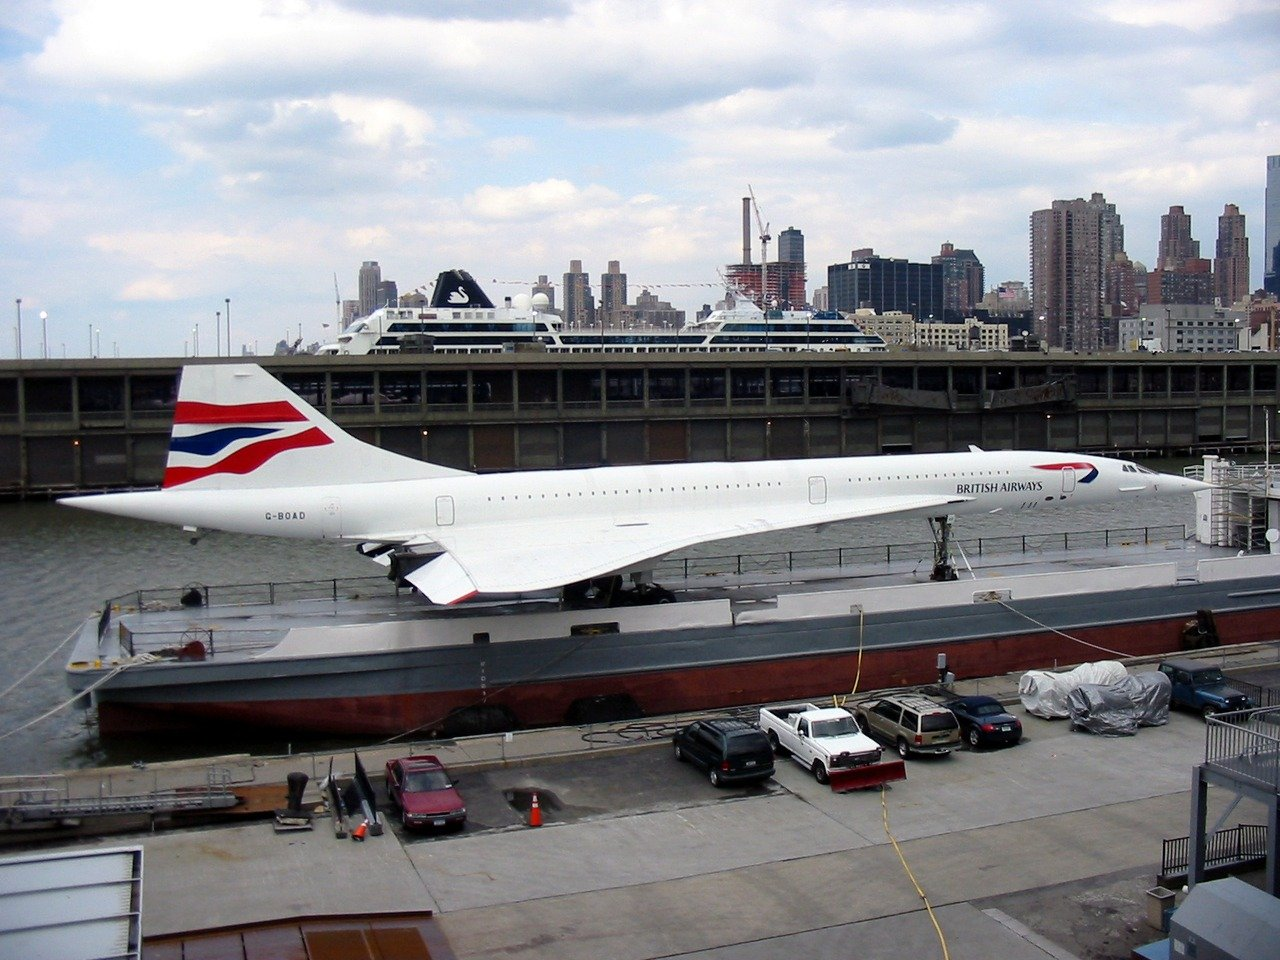 Concorde, passenger plane that could travel faster than the speed of sound